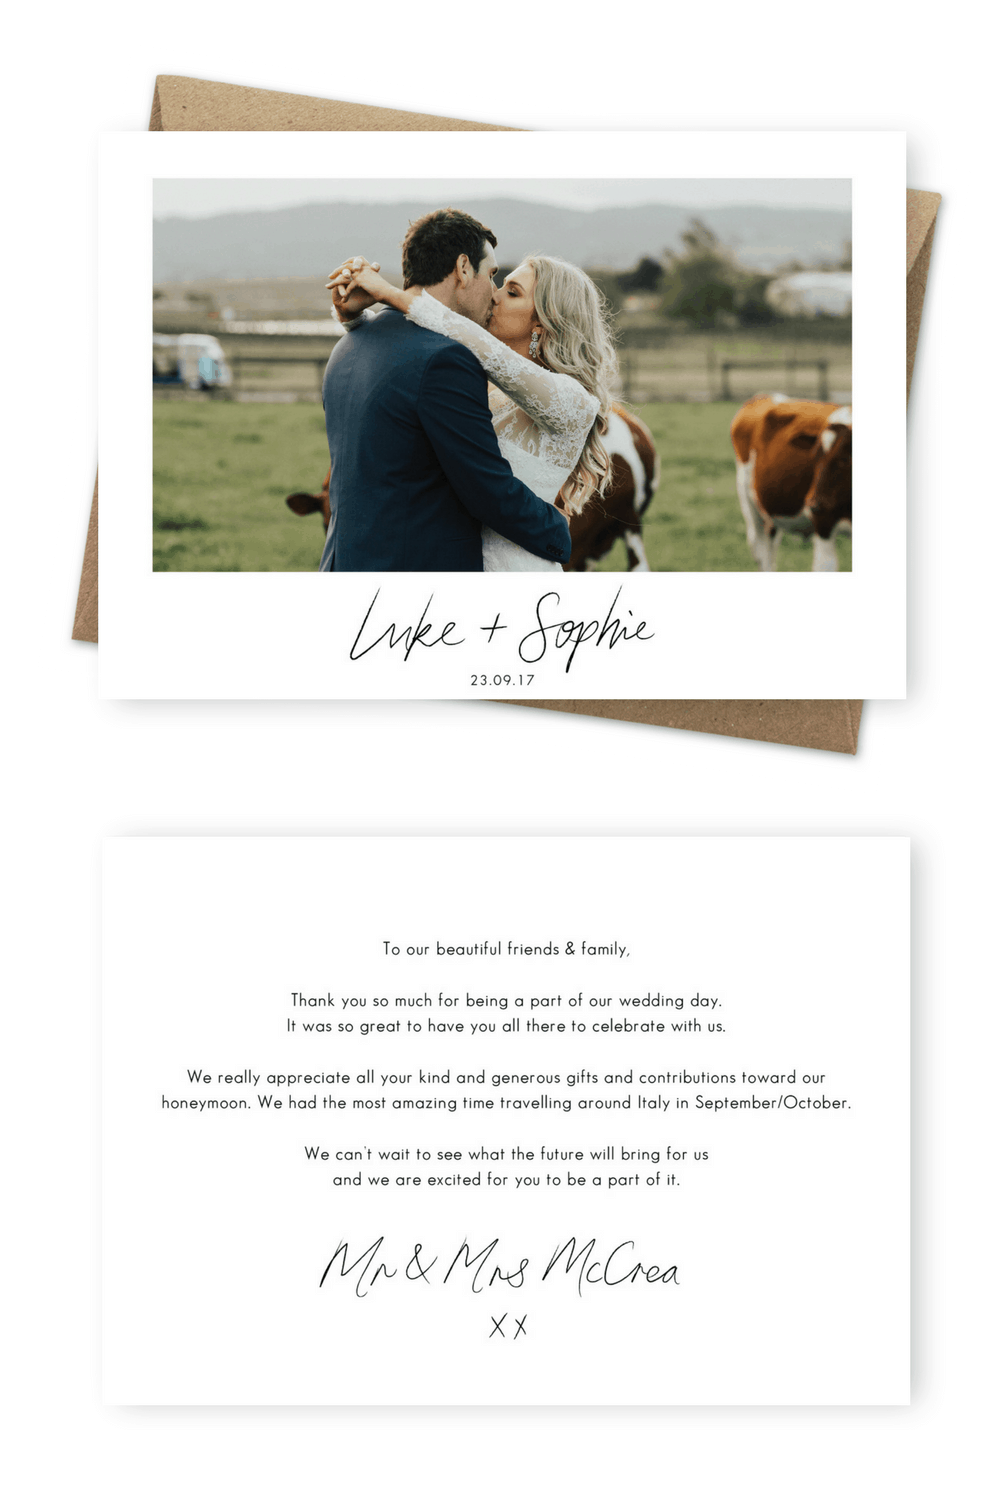 10 Wording Examples for Your Wedding Thank You Cards – For the Love